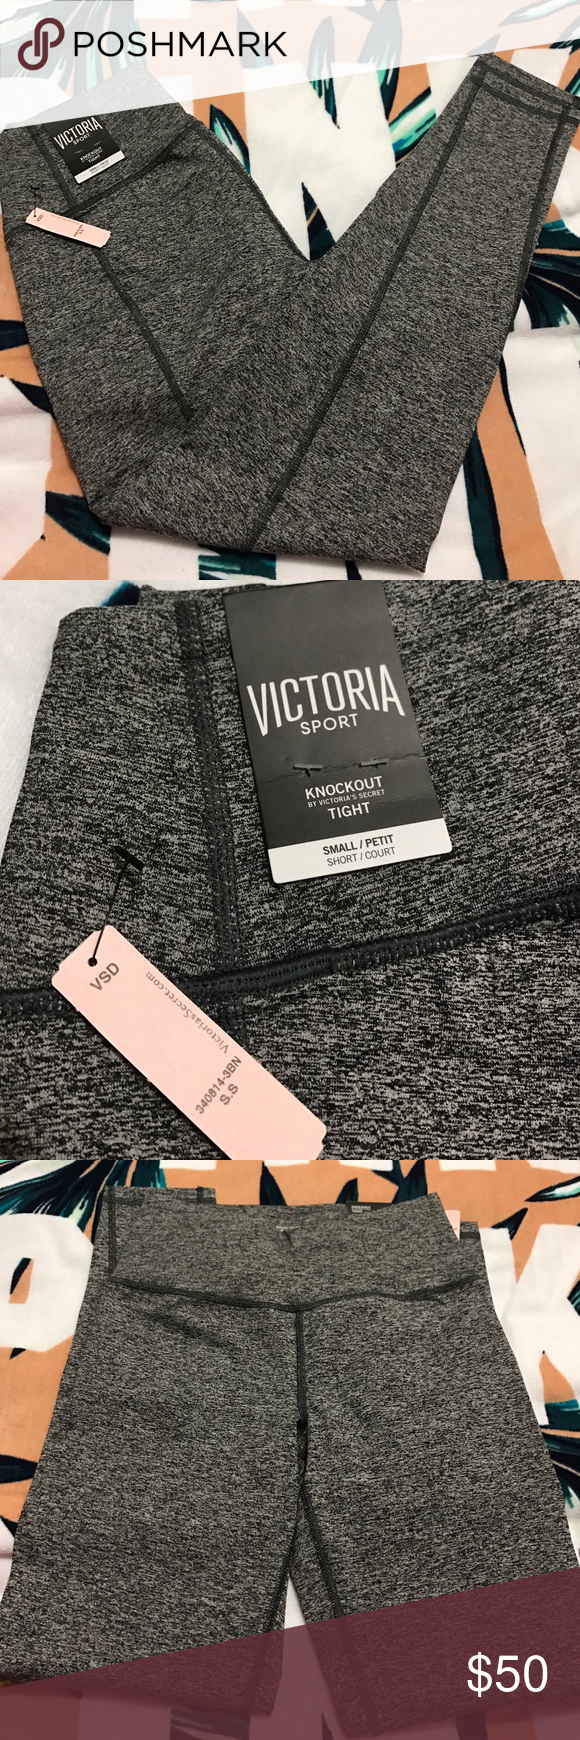 87cc0b94f5213 Victoria's Secret Sport Knockout Tights Brand new with tag. Size ...